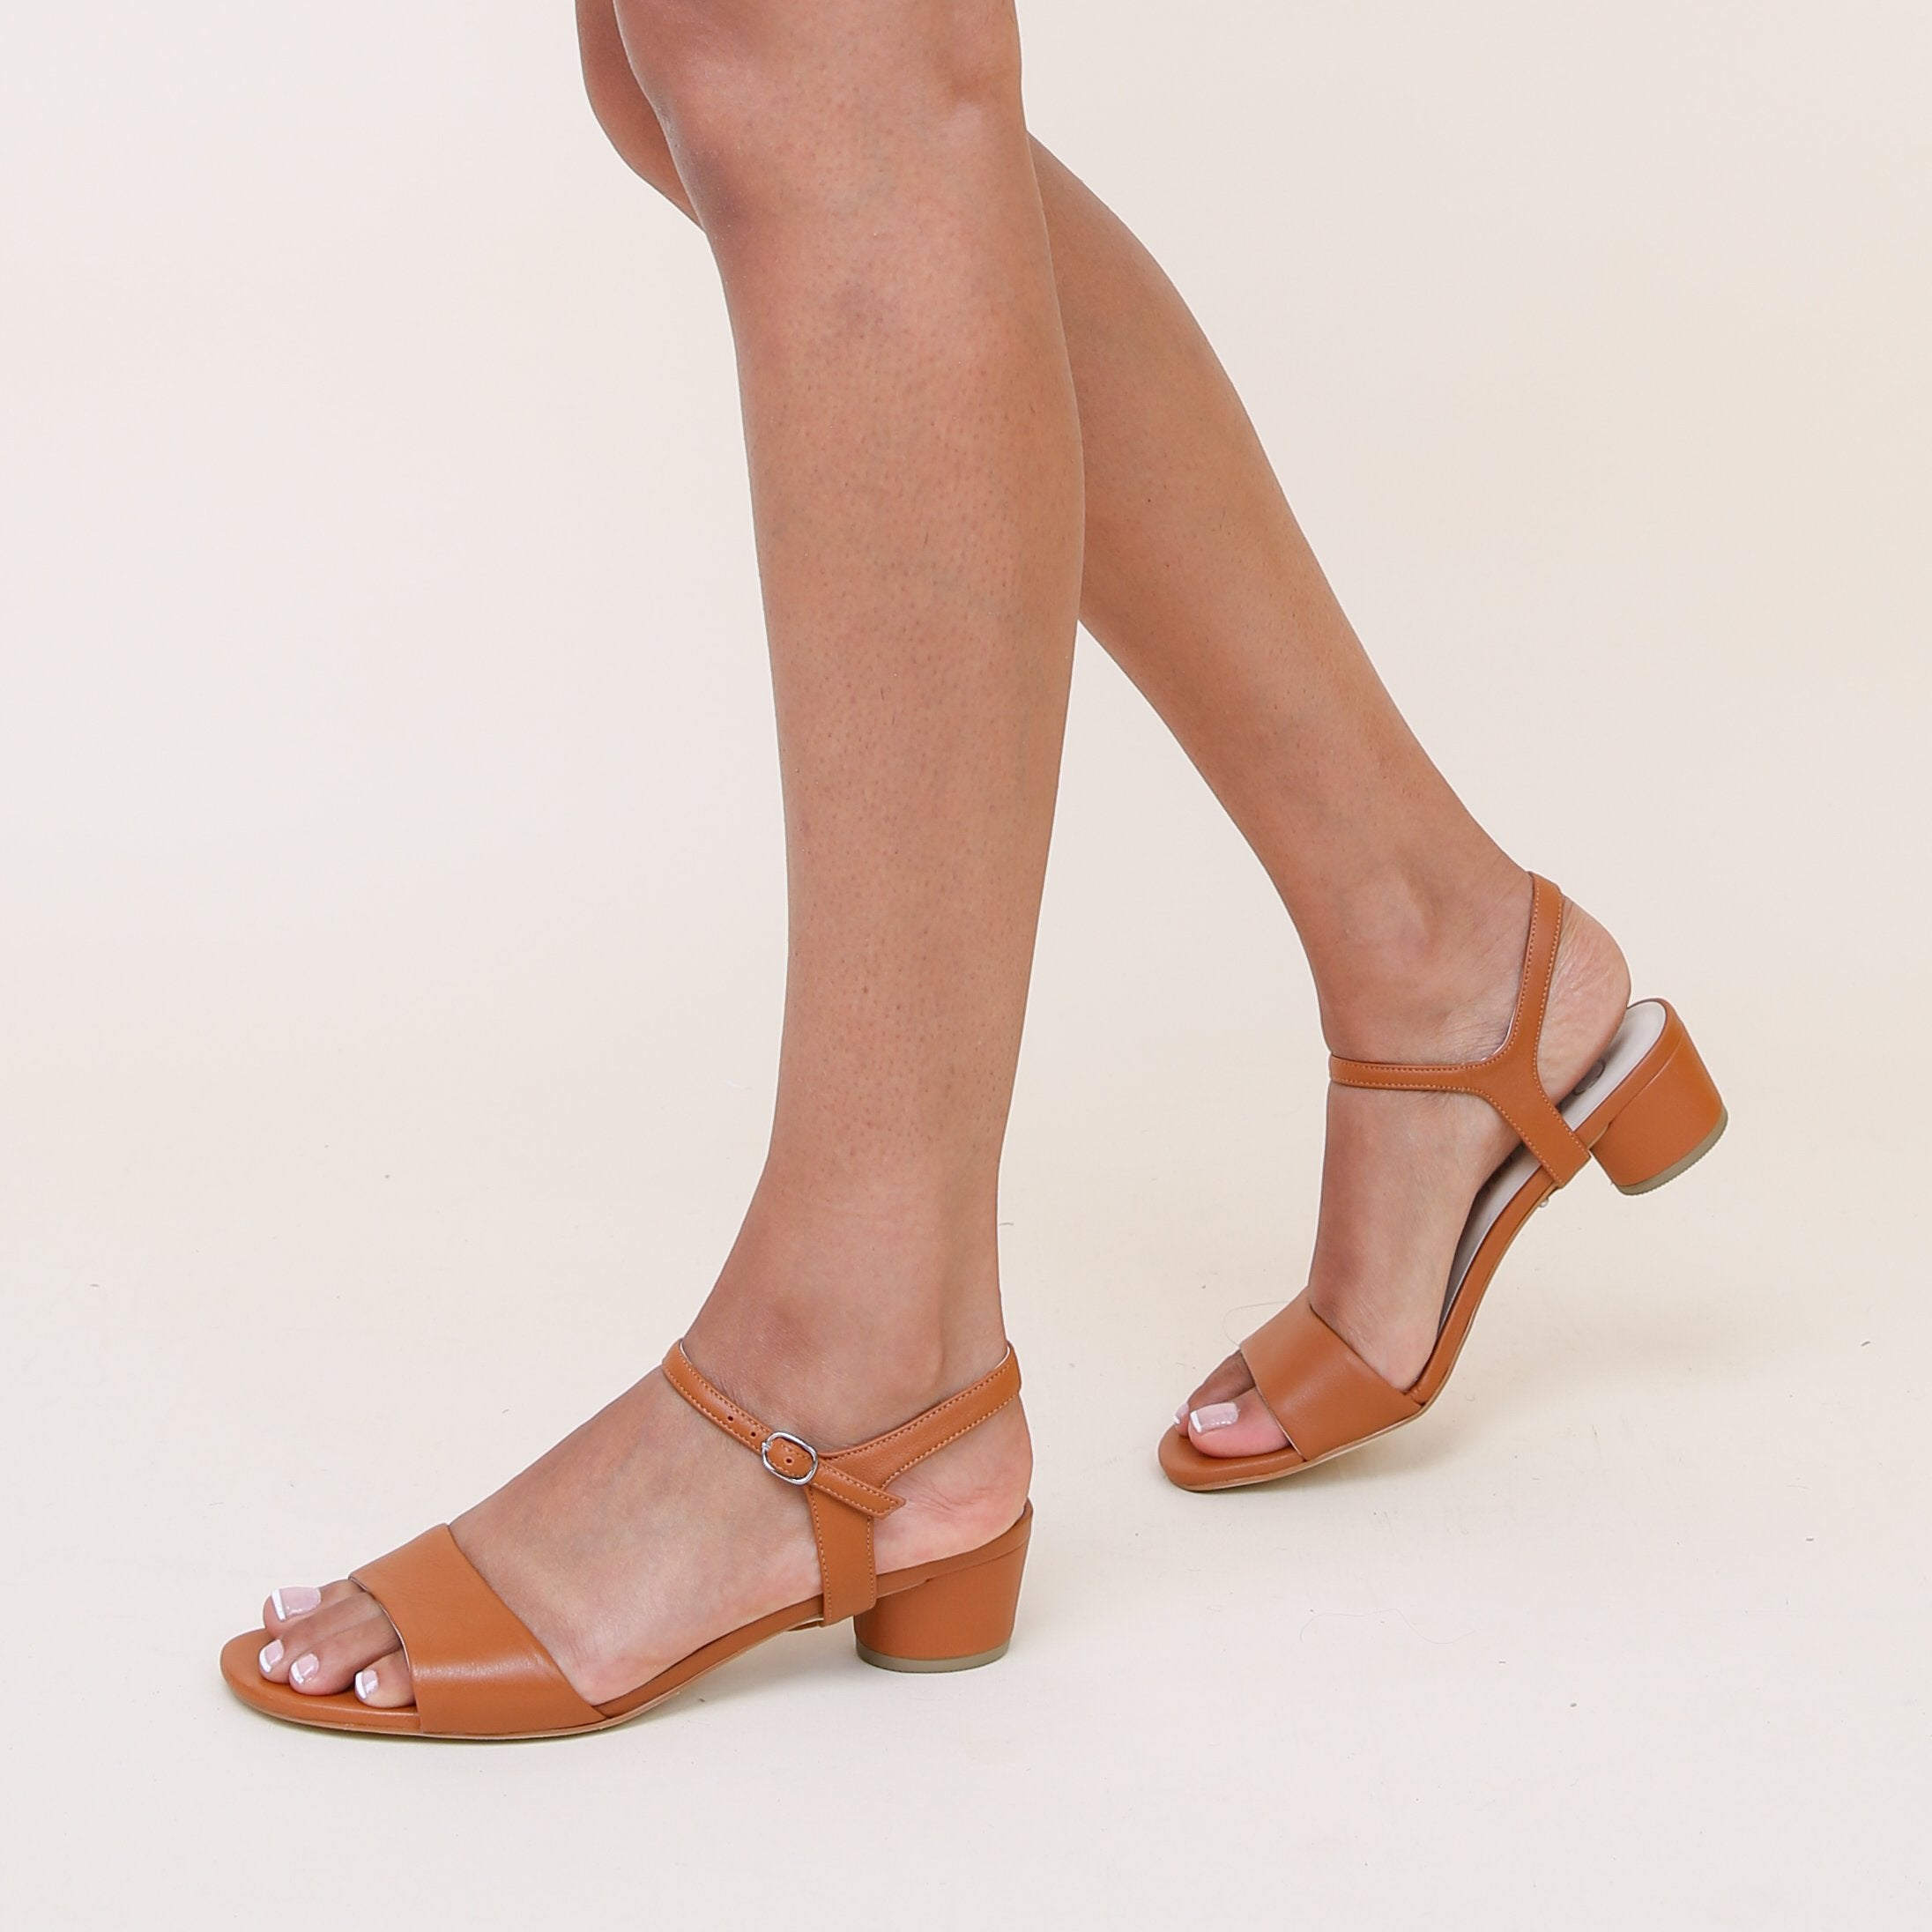 Brown Personalized Womens Sandals + Jackie Strap | Alterre Create Your Own Sandal - Sustainable Footwear Brand & Ethical Shoe Company